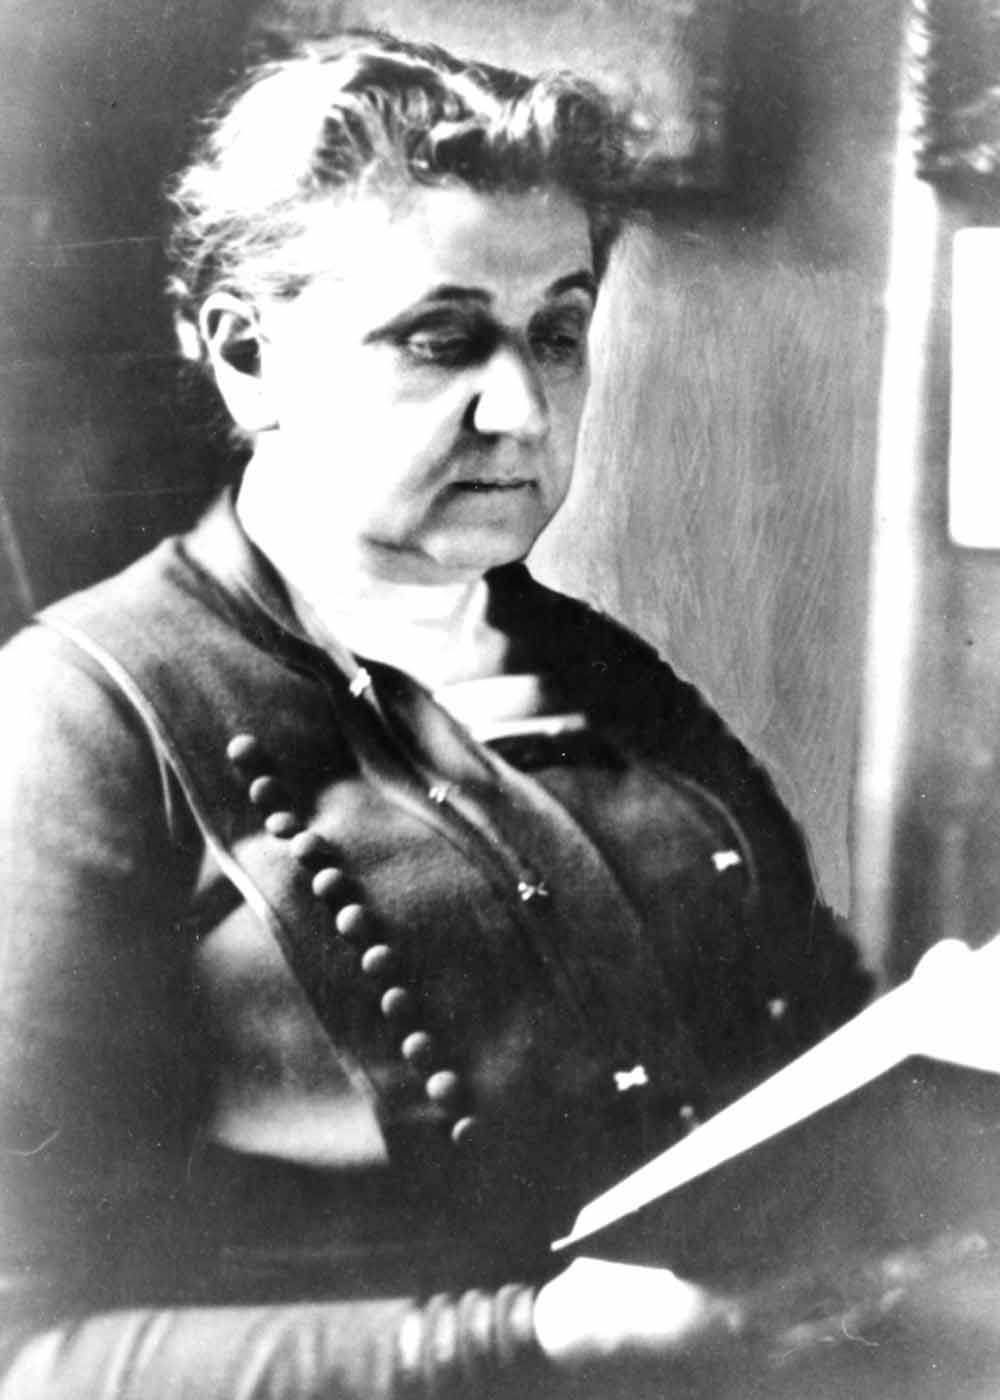 the life and accomplishments of jane addams When this congress later founded the organization called the women's international league for peace and freedom, jane addams served as president until 1929, as presiding officer of its six international conferences in those years, and as honorary president for the remainder of her life.